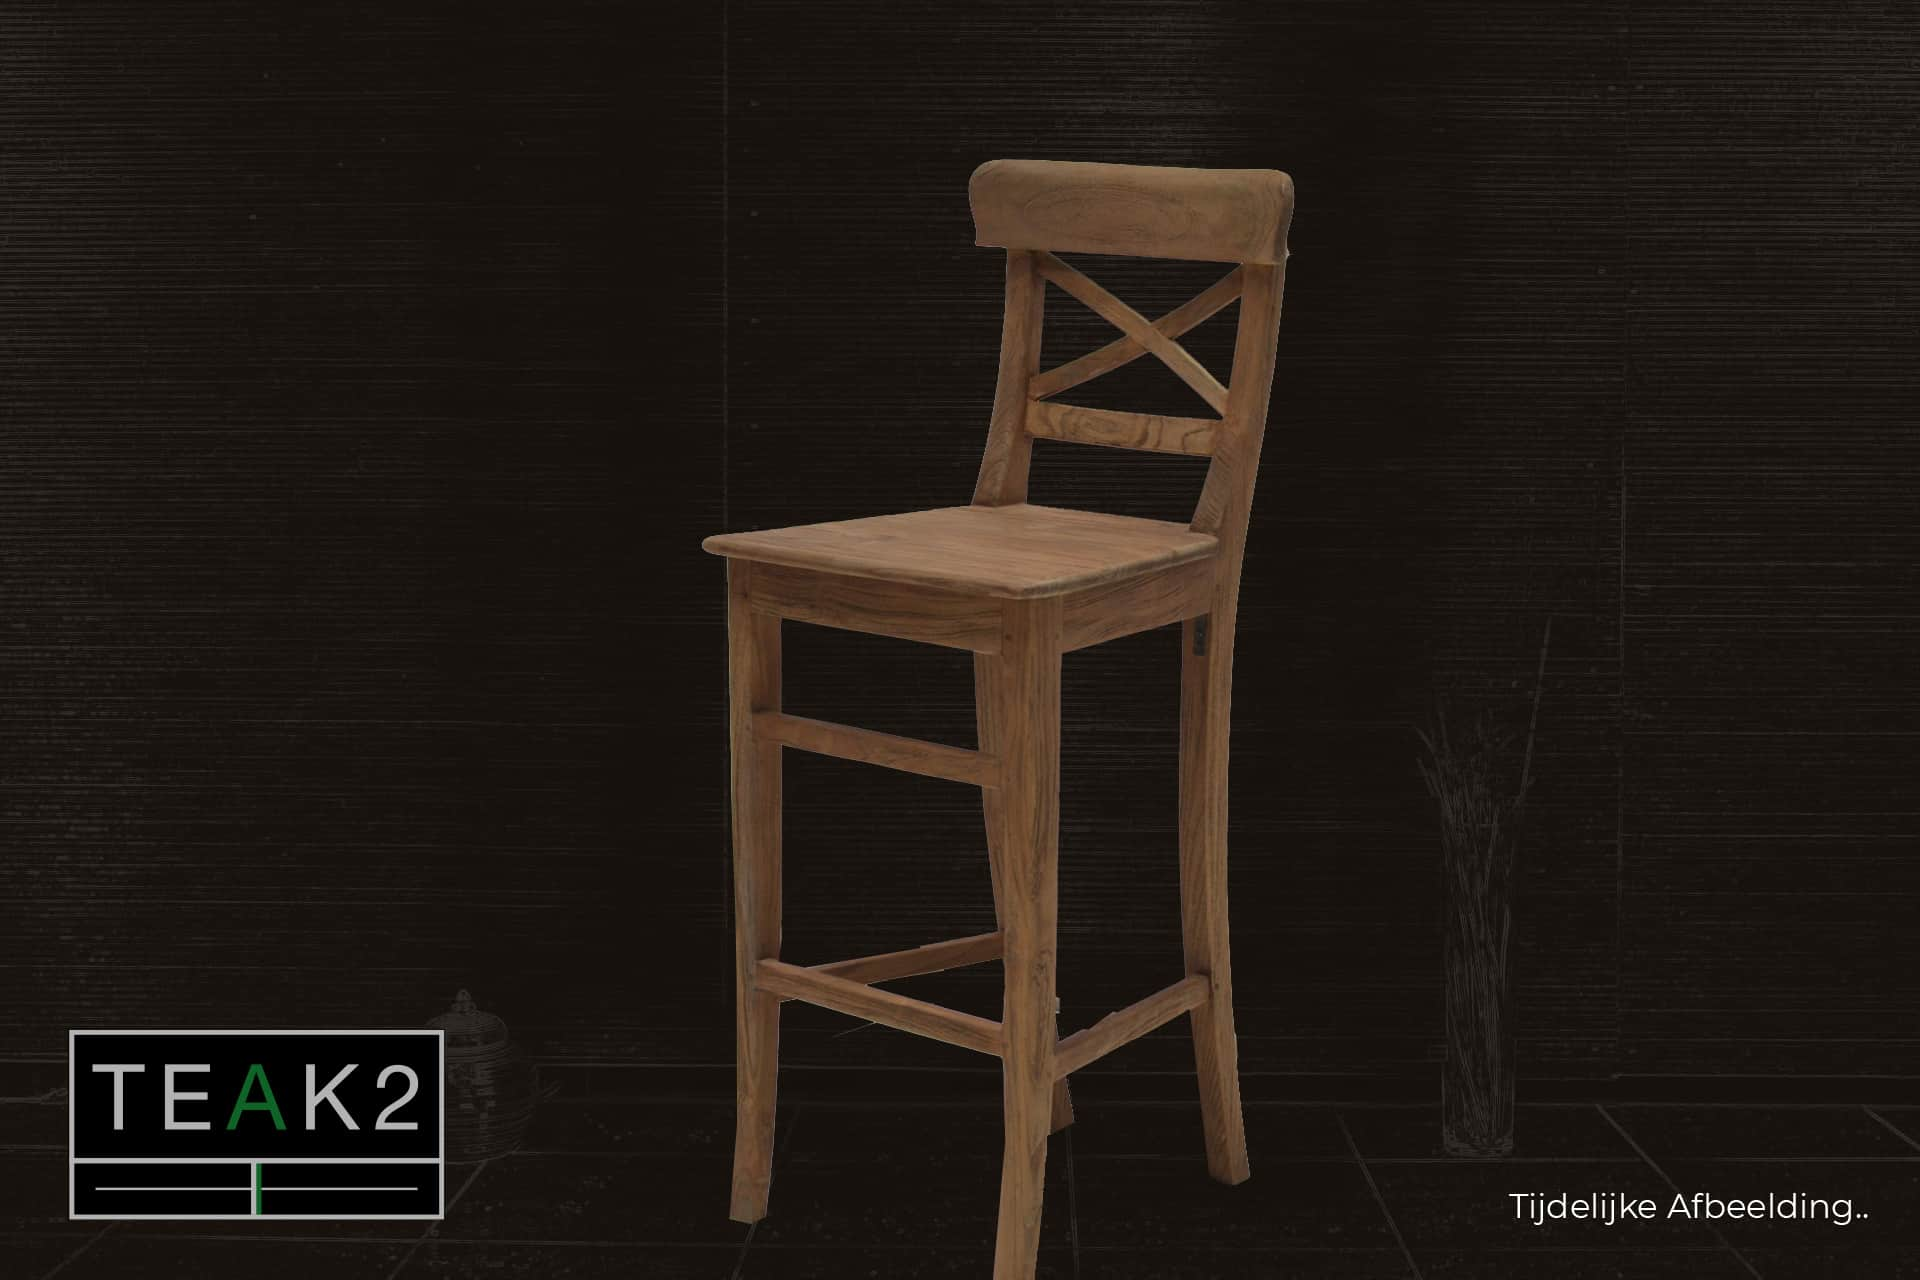 Bar stool Teak Kursi Palang L-Old | teak rustic bar stool old teak with cross in the back. Sturdy bar stool or stool solid old teak - TEAK2.